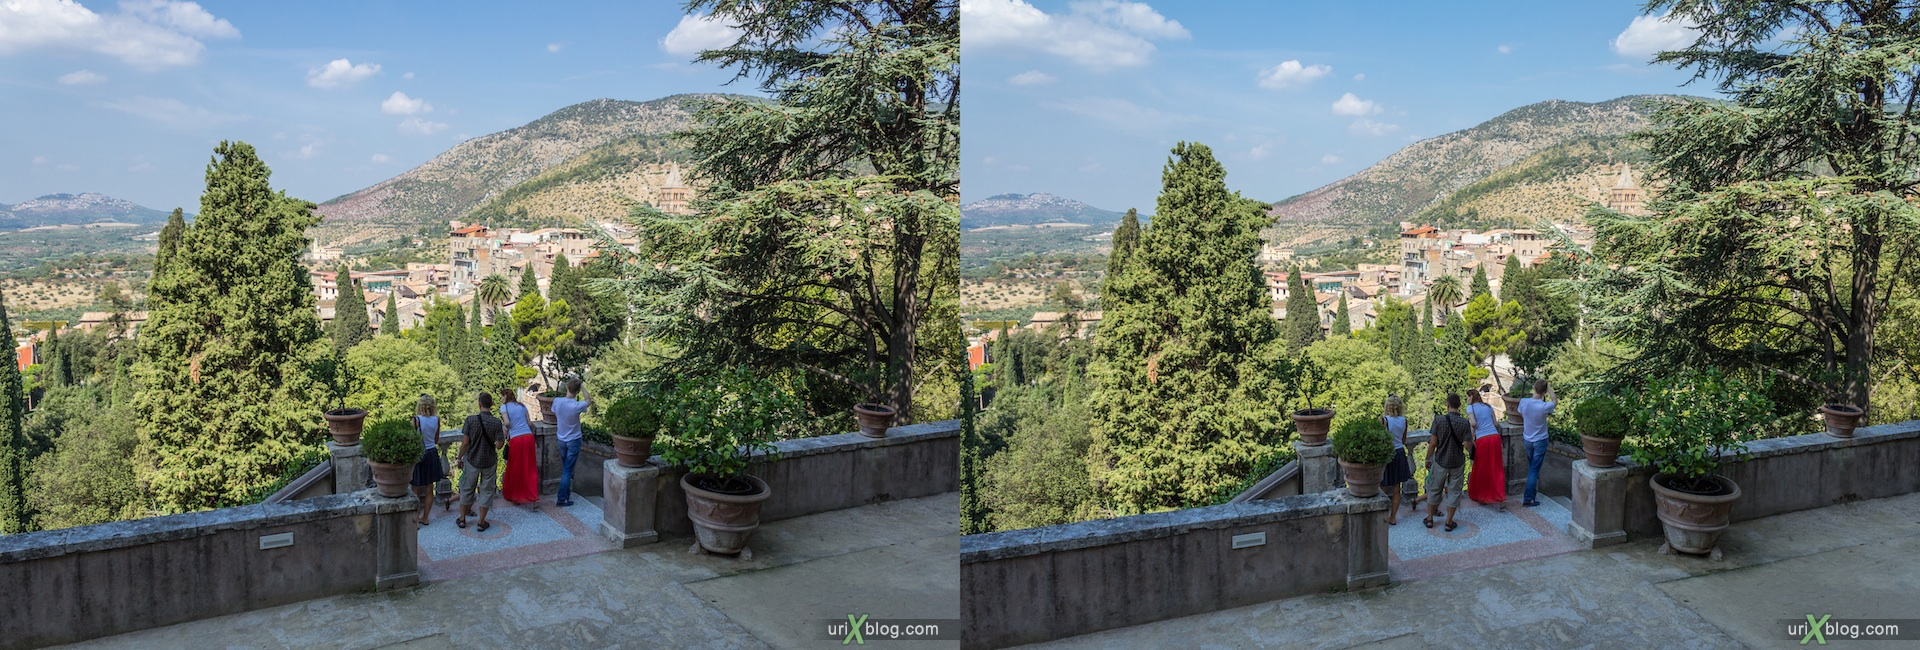 2012, villa D'Este, Italy, Tivoli, Rome, 3D, stereo pair, cross-eyed, crossview, cross view stereo pair